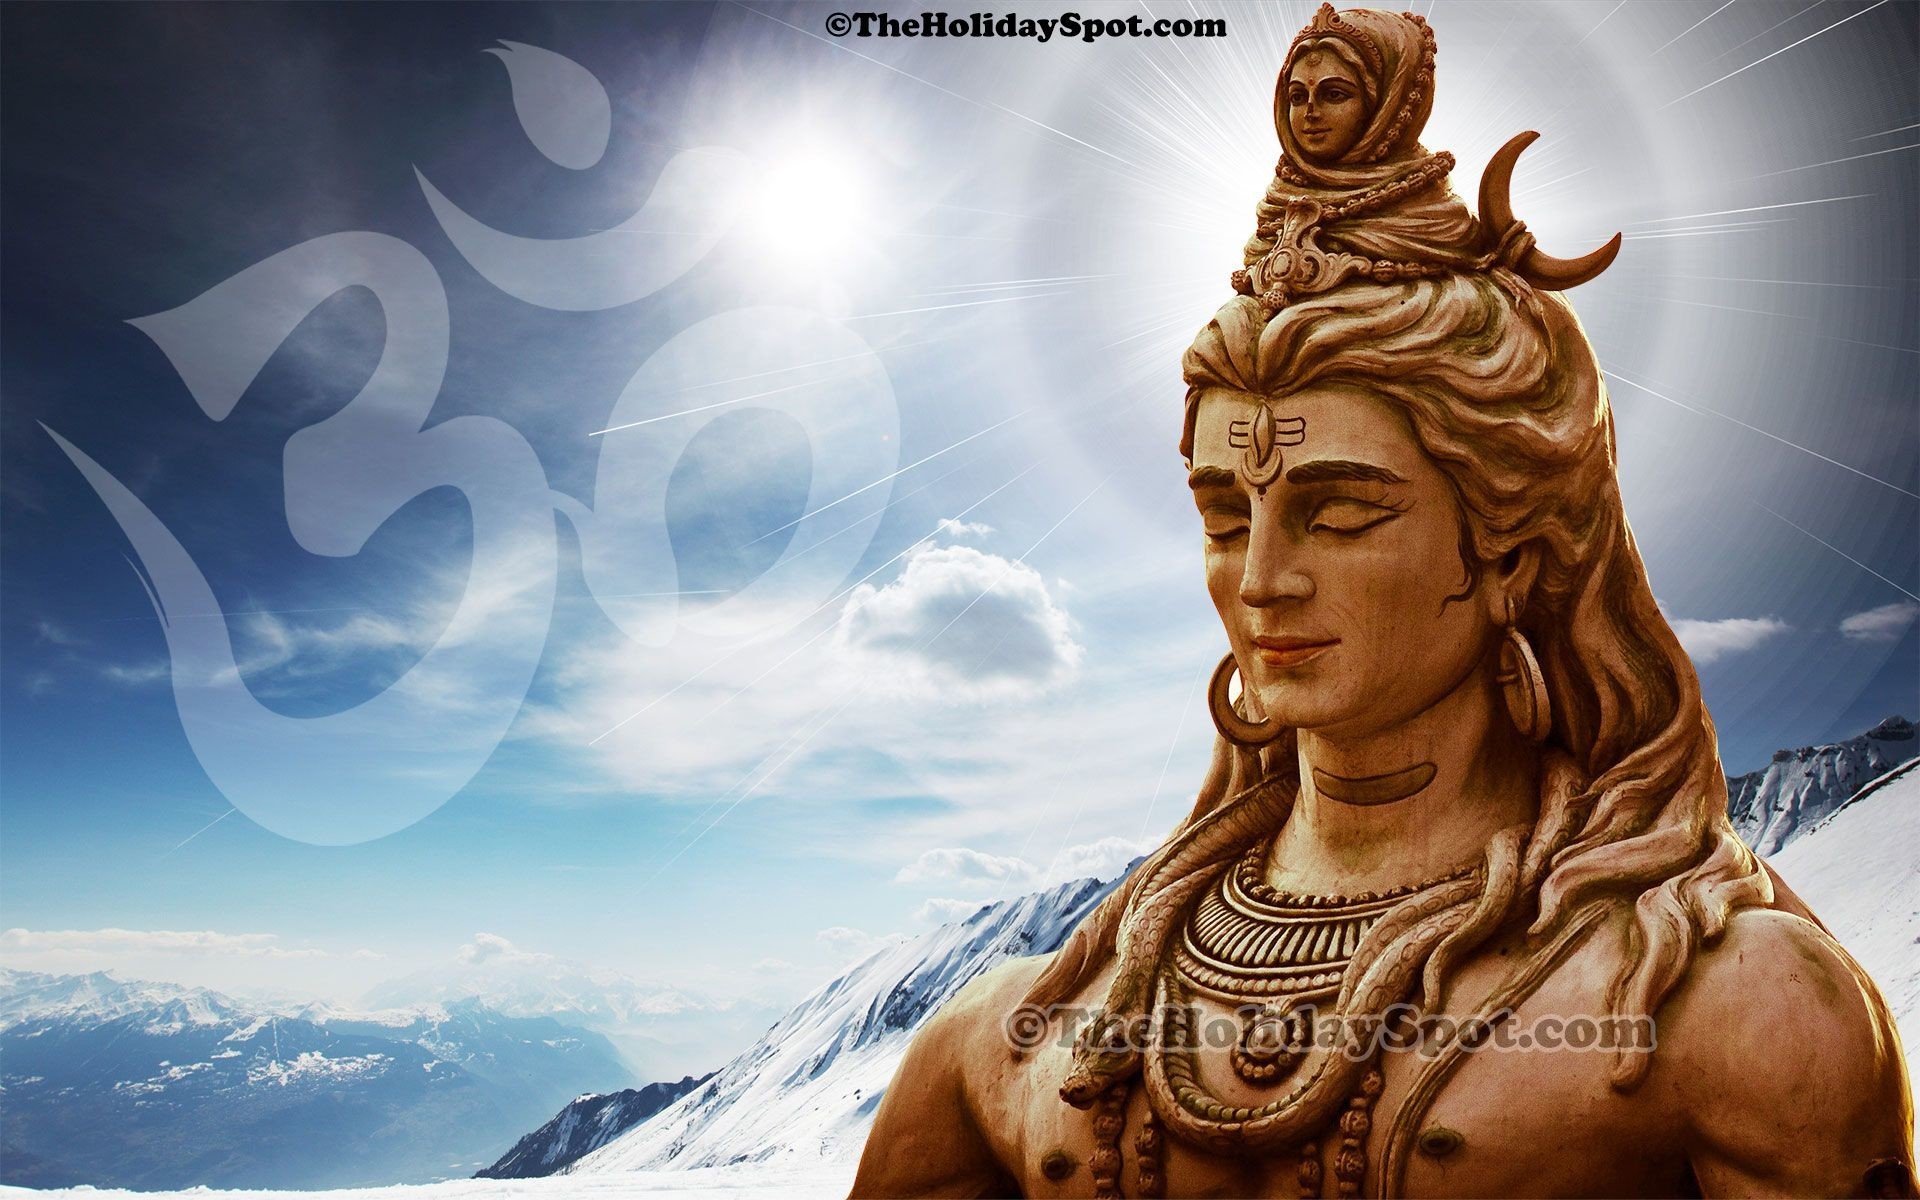 1920x1200 Lord Shiva Hd Wallpapers For Laptop Of lord shiva | Spirituality